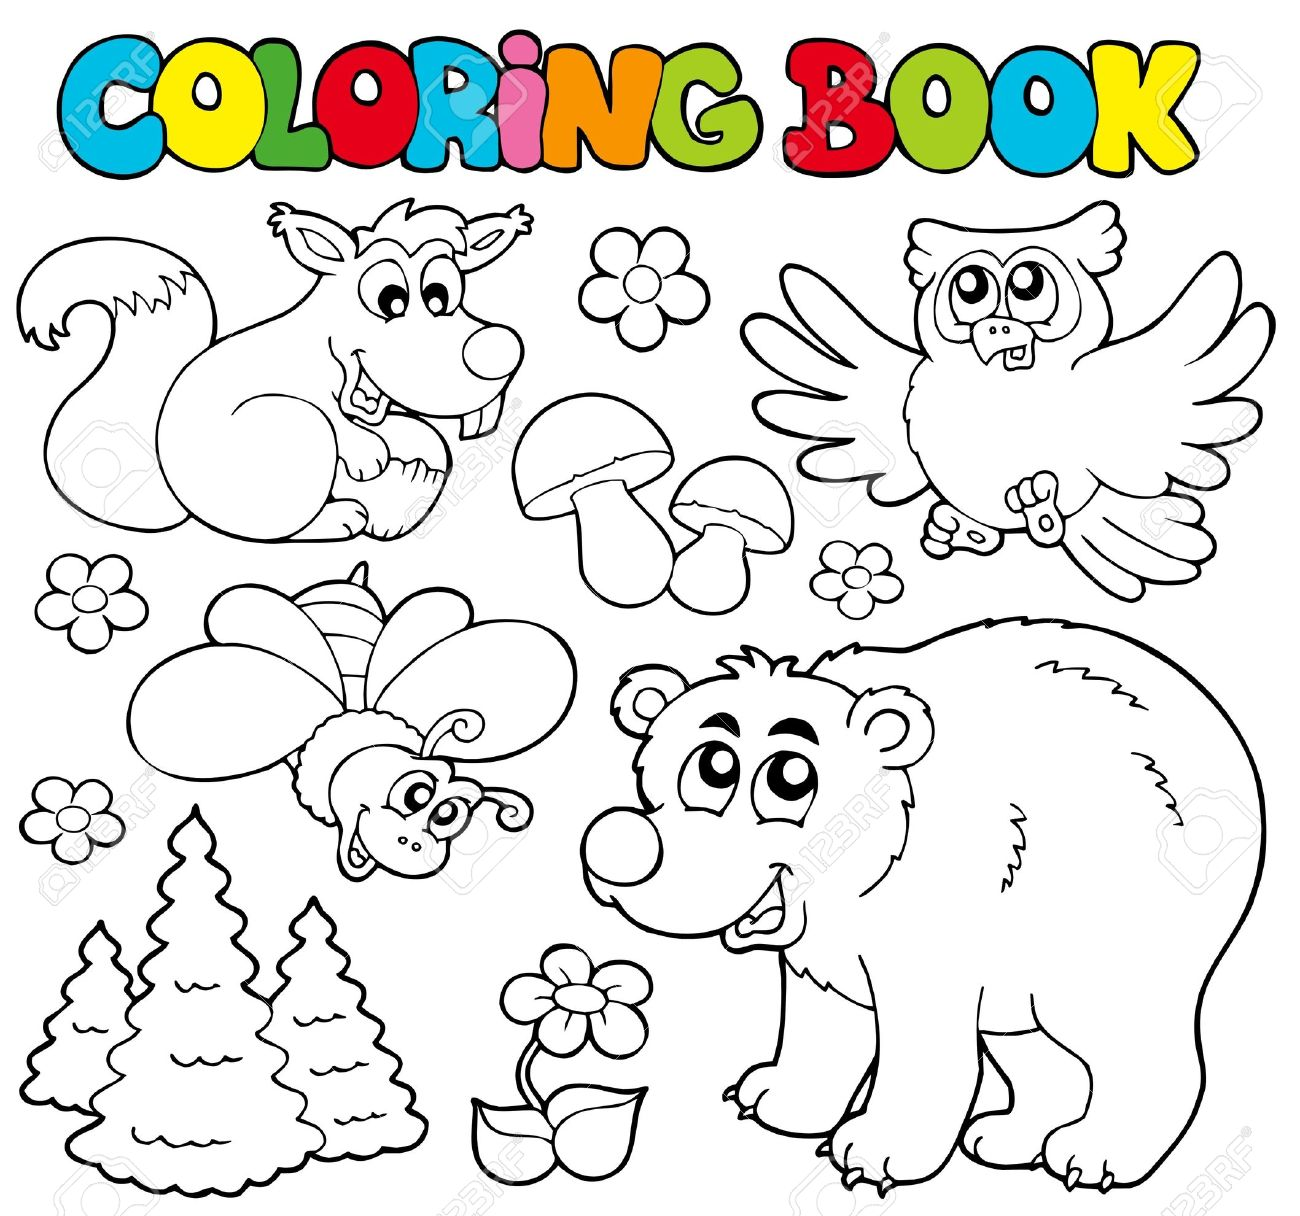 Coloring Book With Forest Animals - Illustration. Royalty Free ...